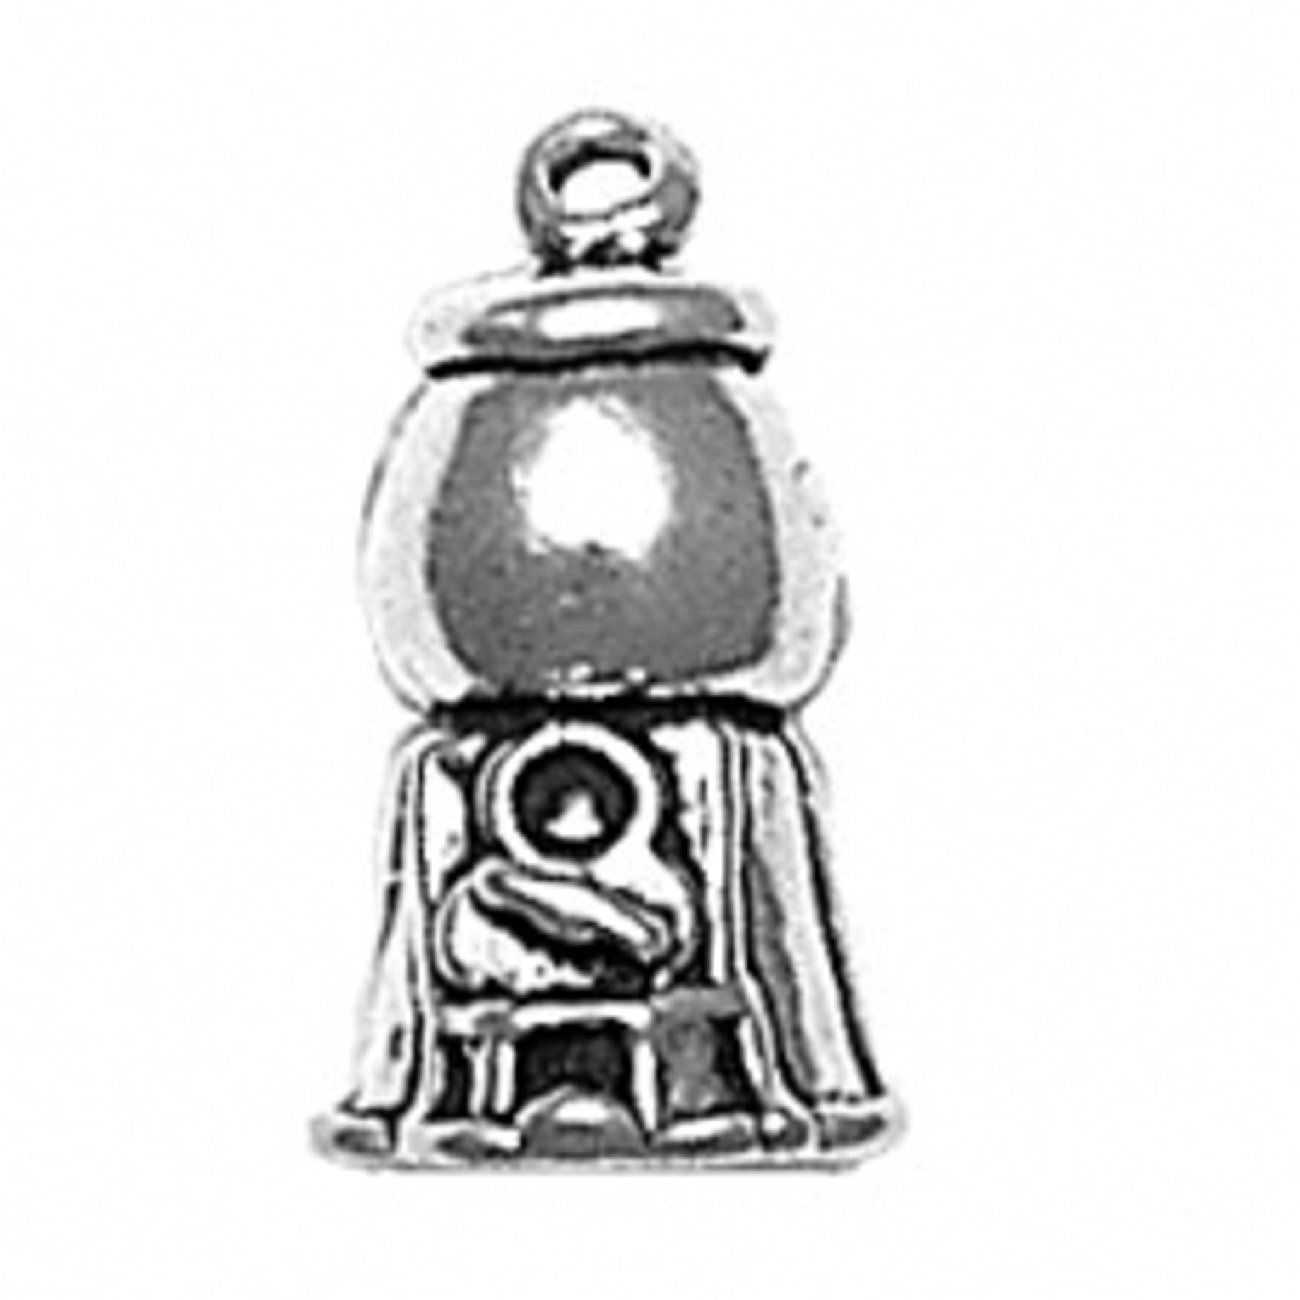 Sterling Silver 7 4.5mm Charm Bracelet With Attached 3D Bubble Gum Gumball Machine Charm